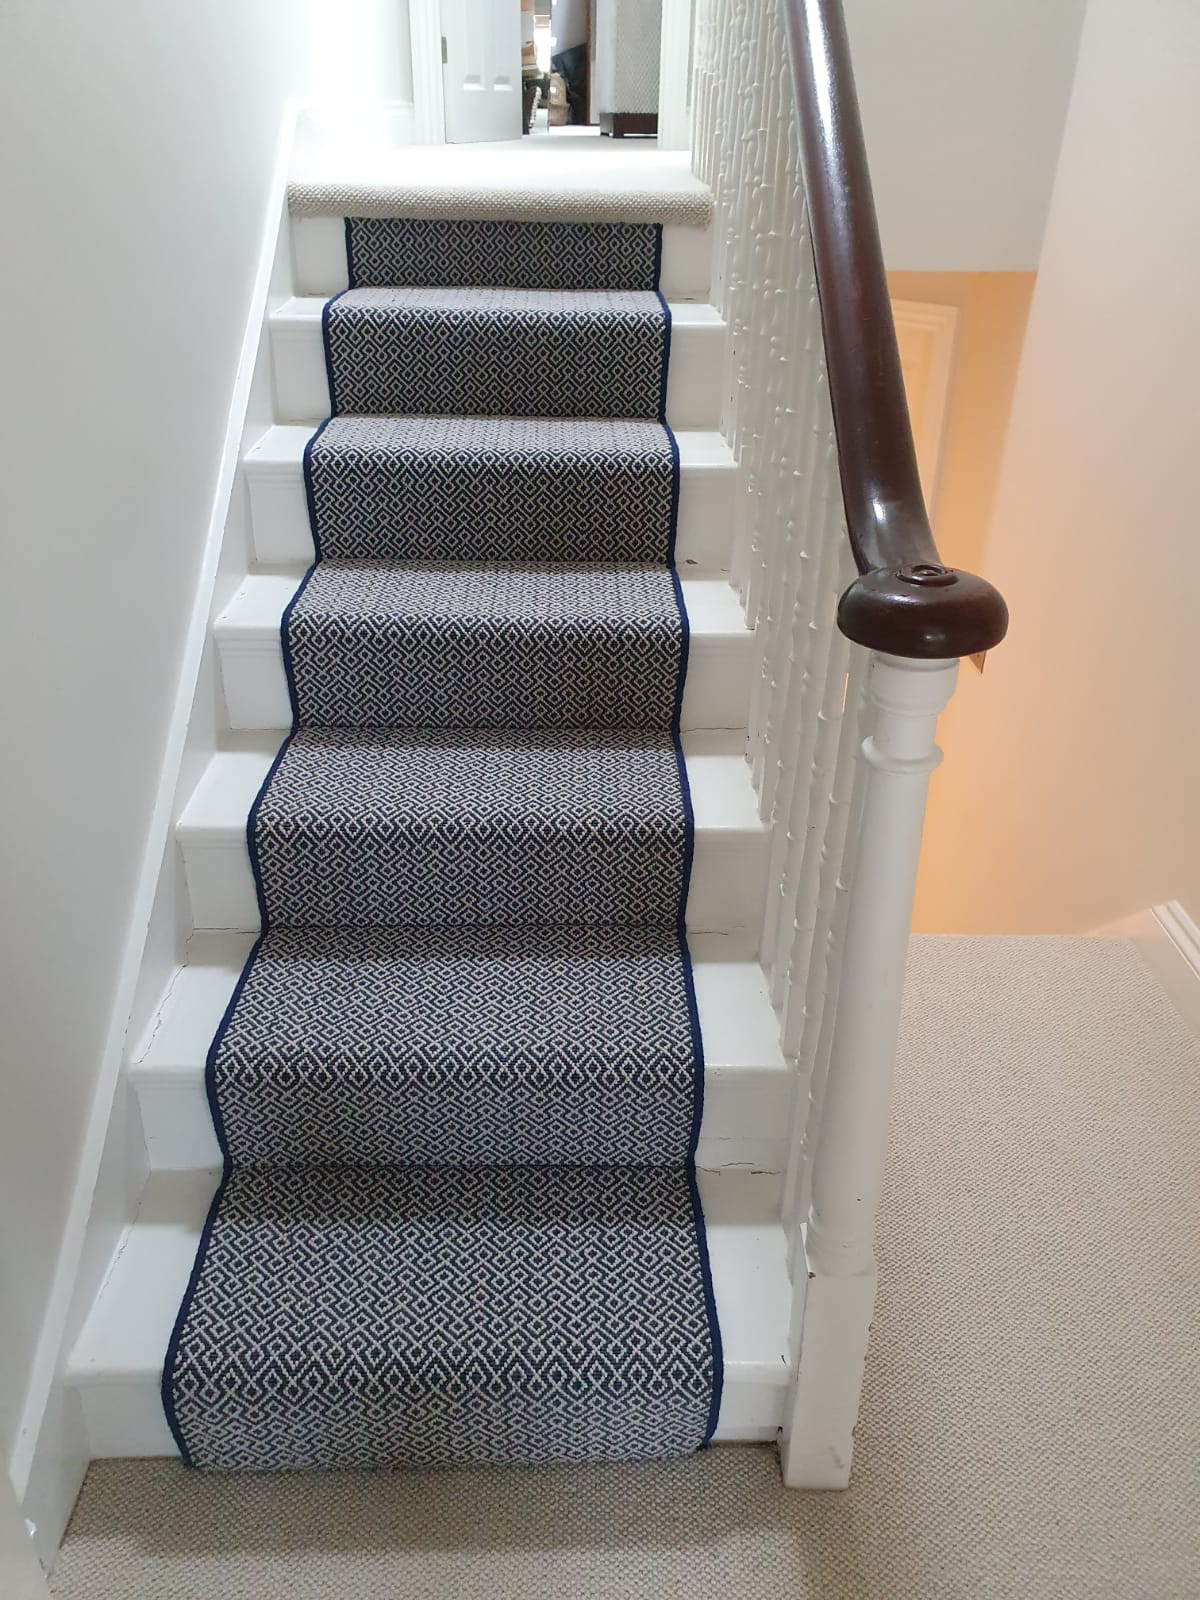 Rols Wool Carpets Gala Lattice Ocean Carpet In Chelsea 1